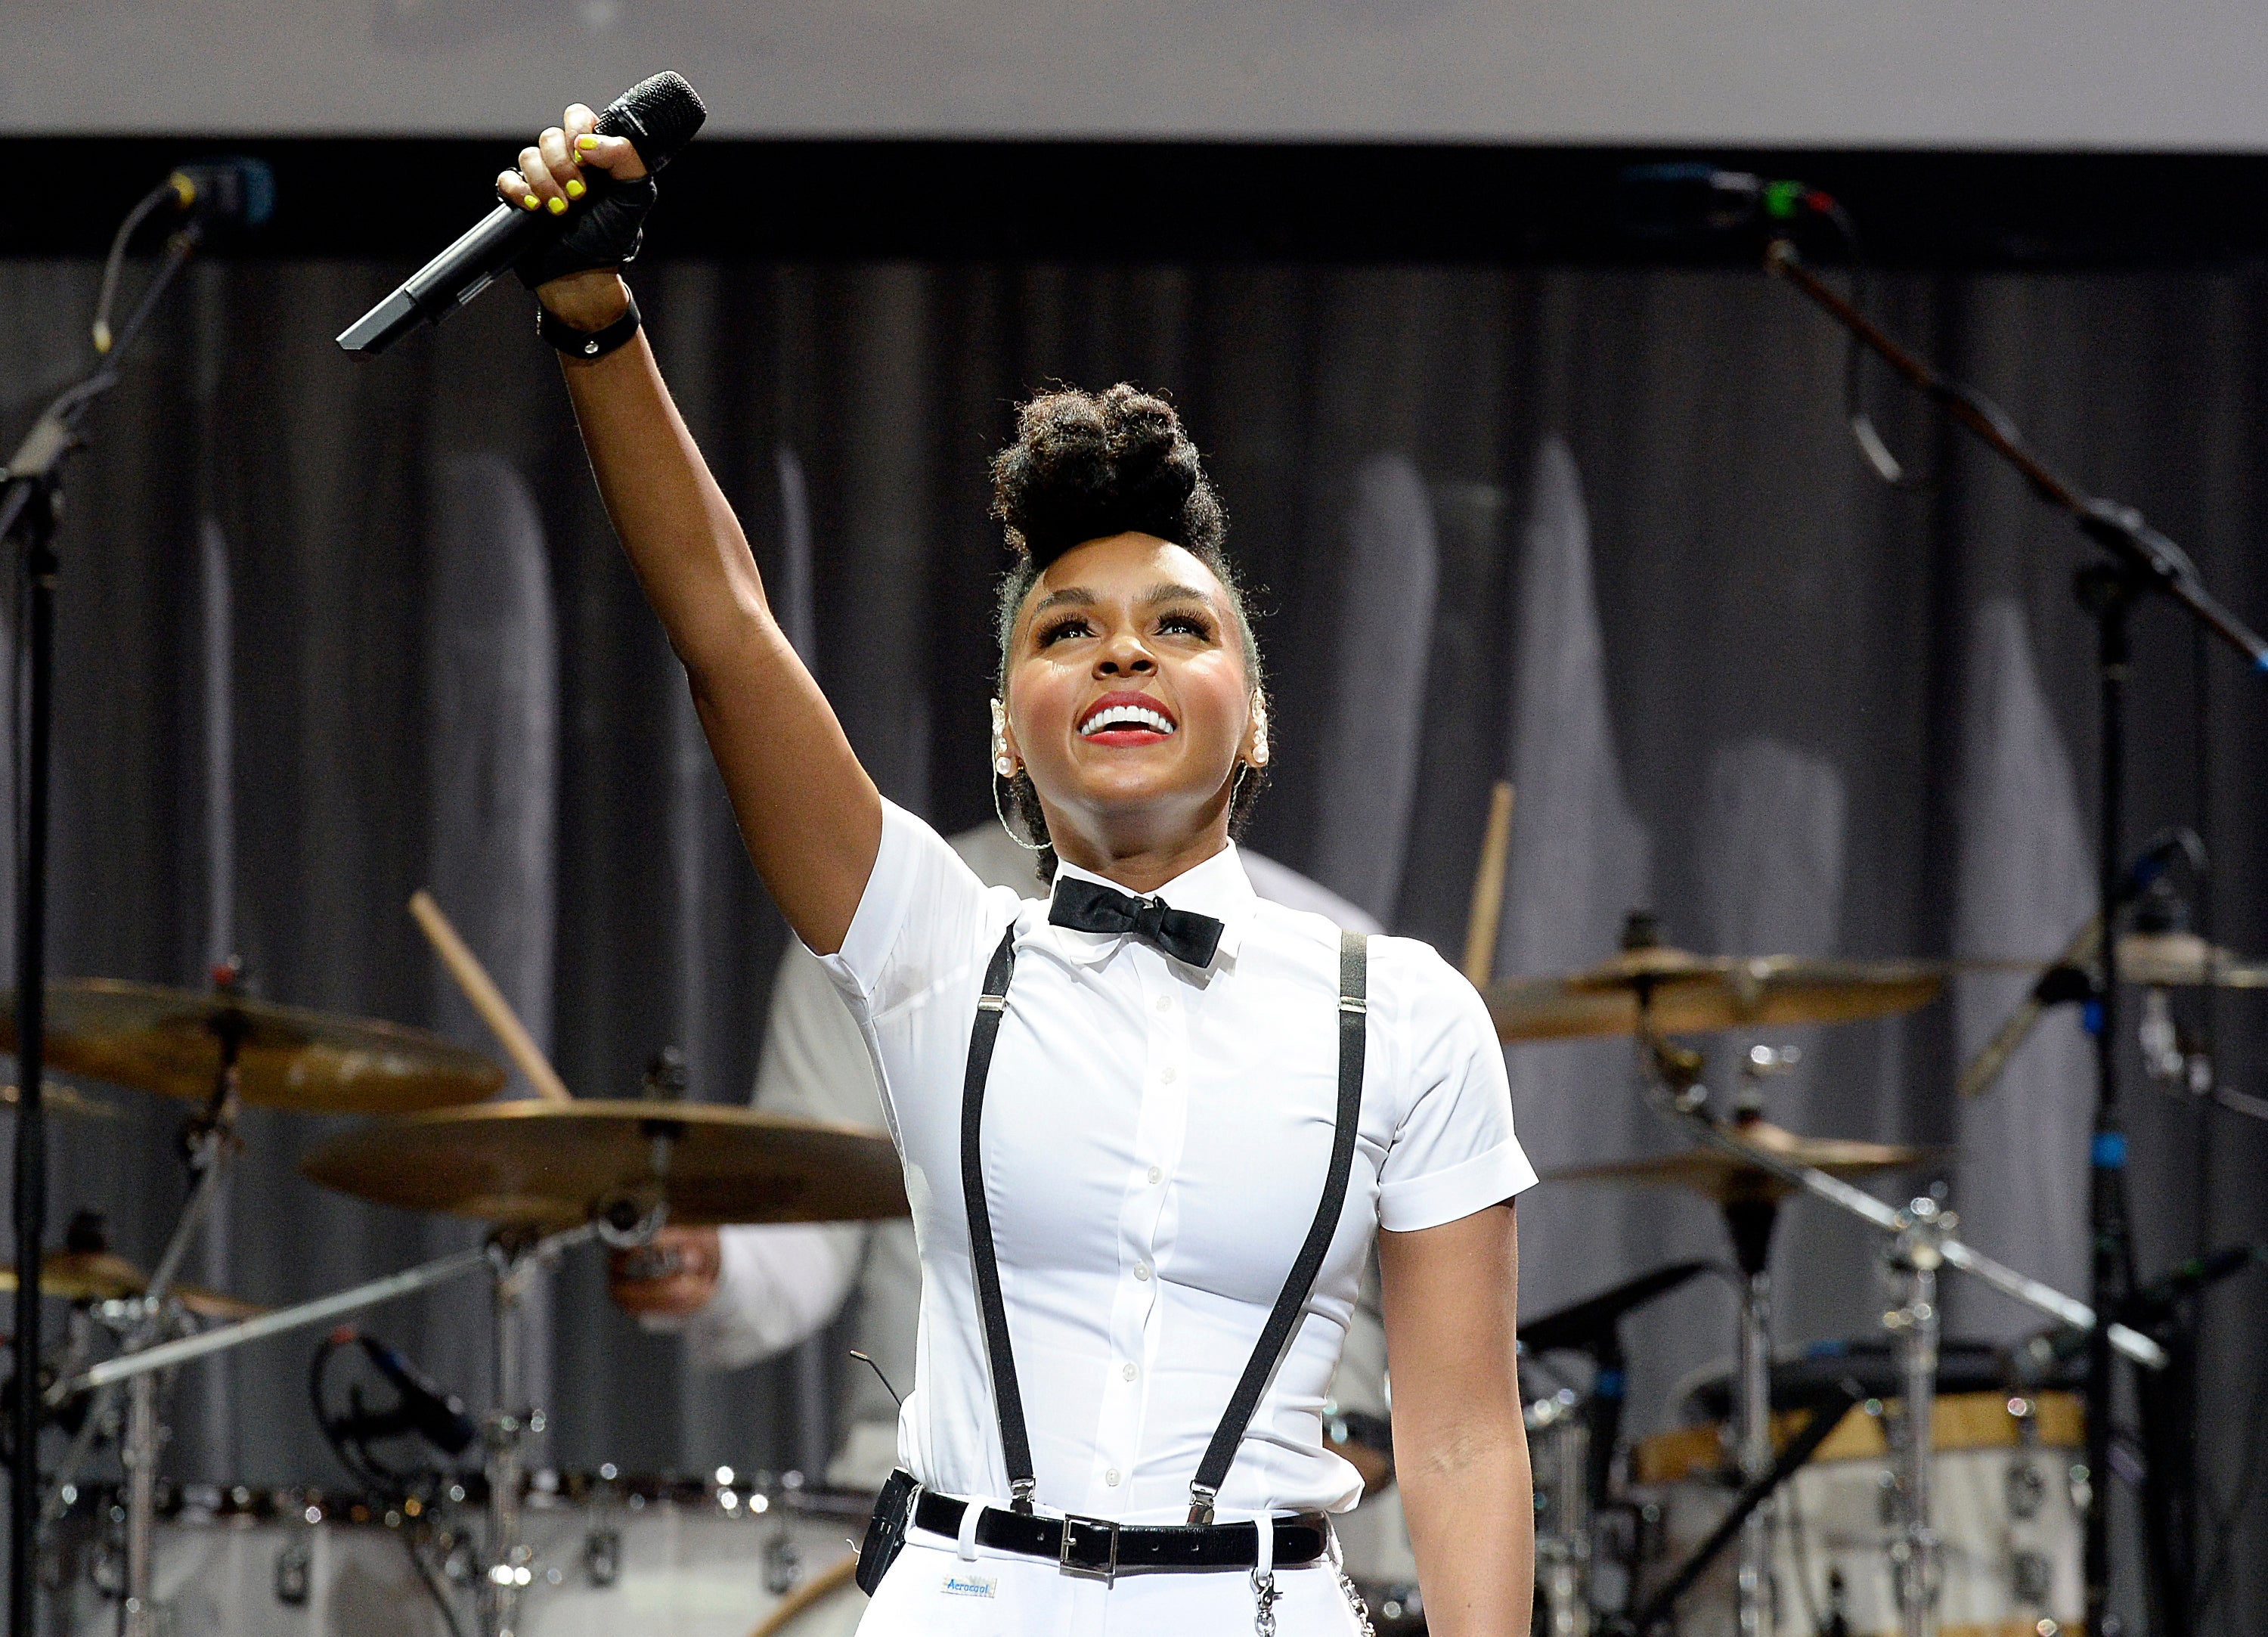 Singer Janelle Monáe performs after receiving the Grammy Museum's Jane Ortner Education Award July 16, 2014, in Los Angeles, California.